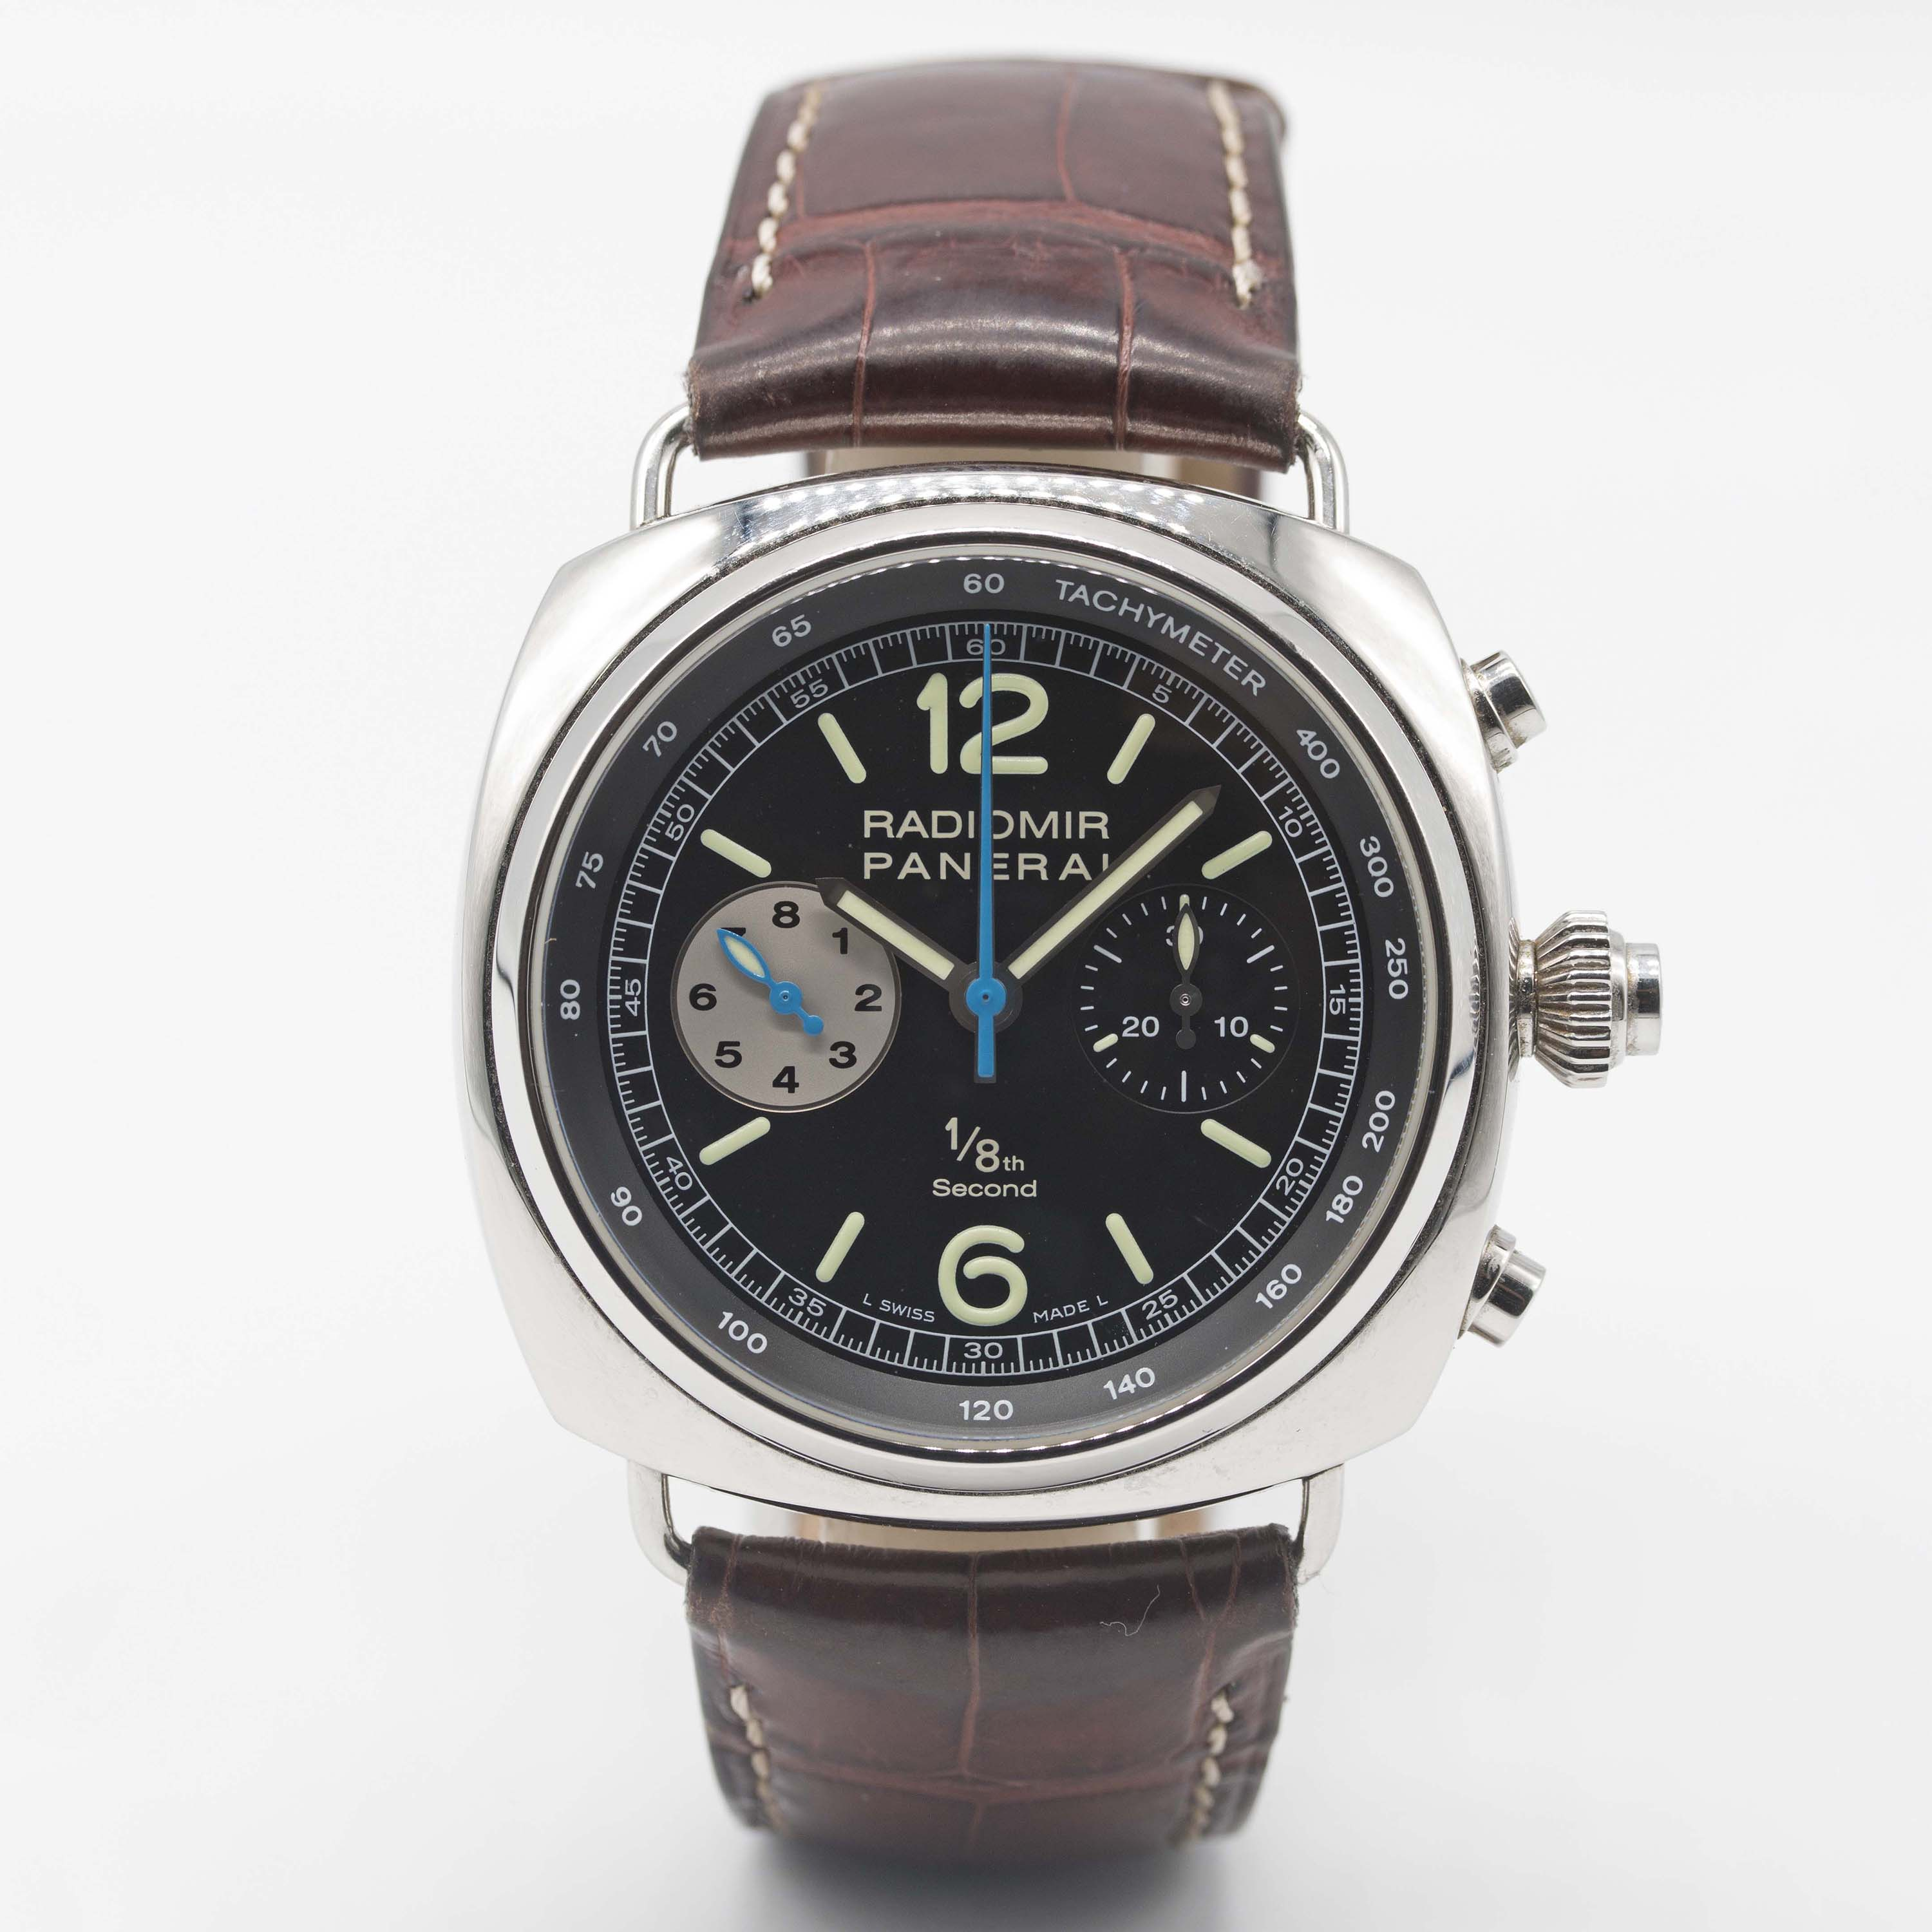 Lot 233 - A GENTLEMAN'S STAINLESS STEEL PANERAI RADIOMIR 1/8TH SECOND RATTRAPANTE CHRONOGRAPH WRIST WATCH